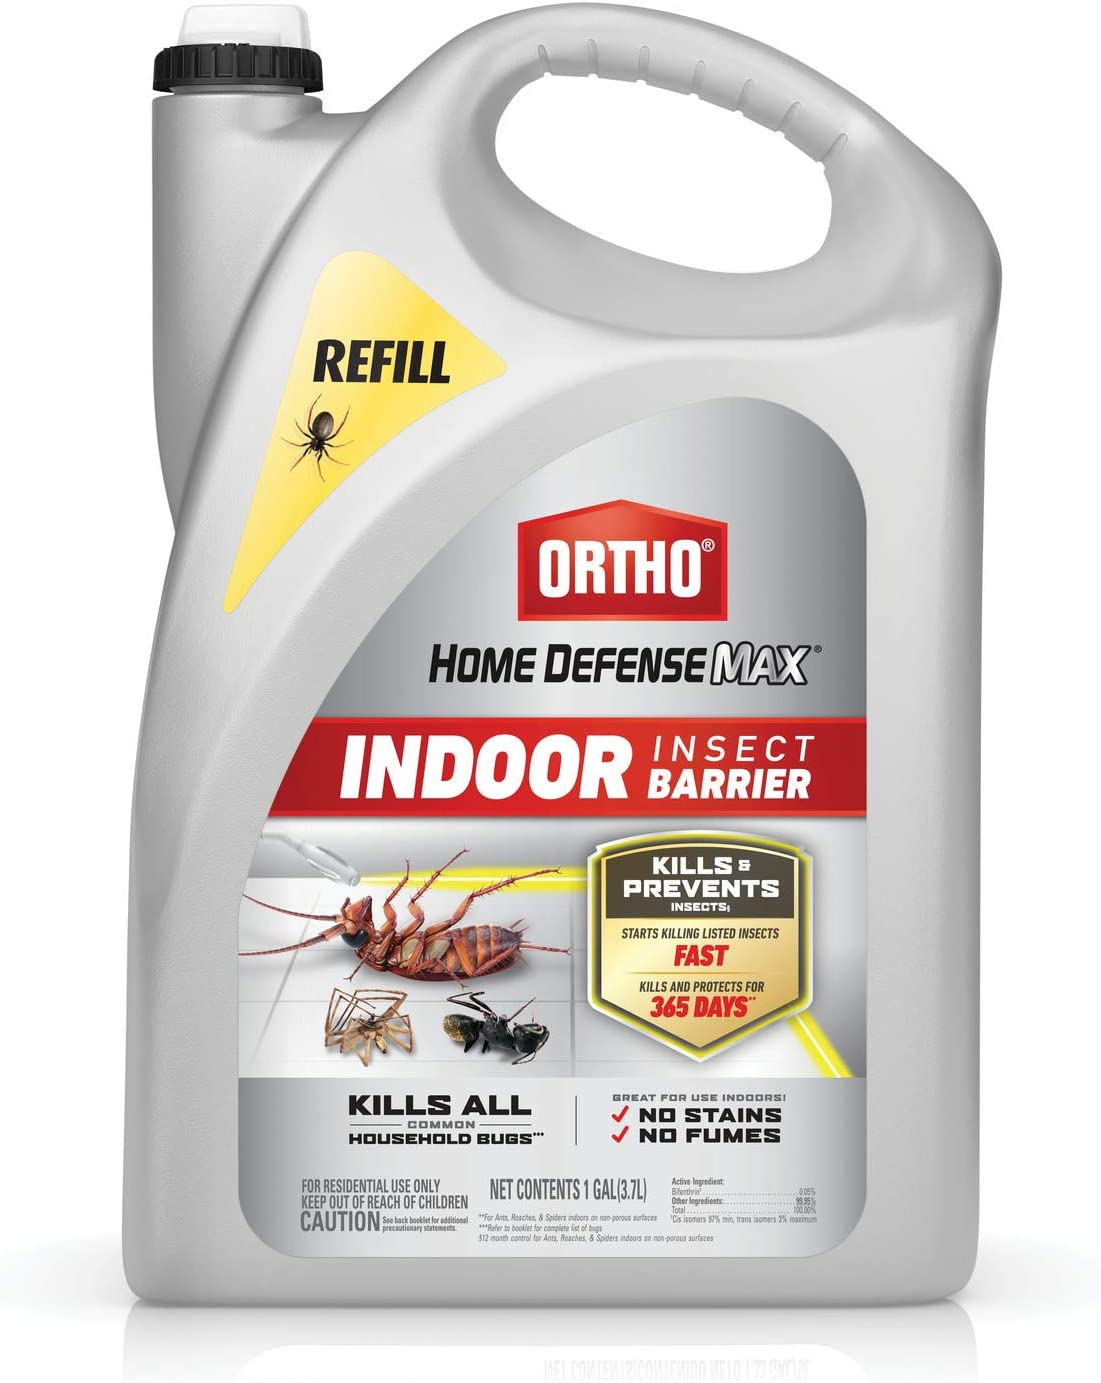 Ortho Home Defense Max Indoor Insect Barrier: Refill, Starts Killing Ants, Roaches, Spiders, Fleas and Ticks Fast, Use for Indoor Pest Control, Long-Lasting Control, 1 gal.